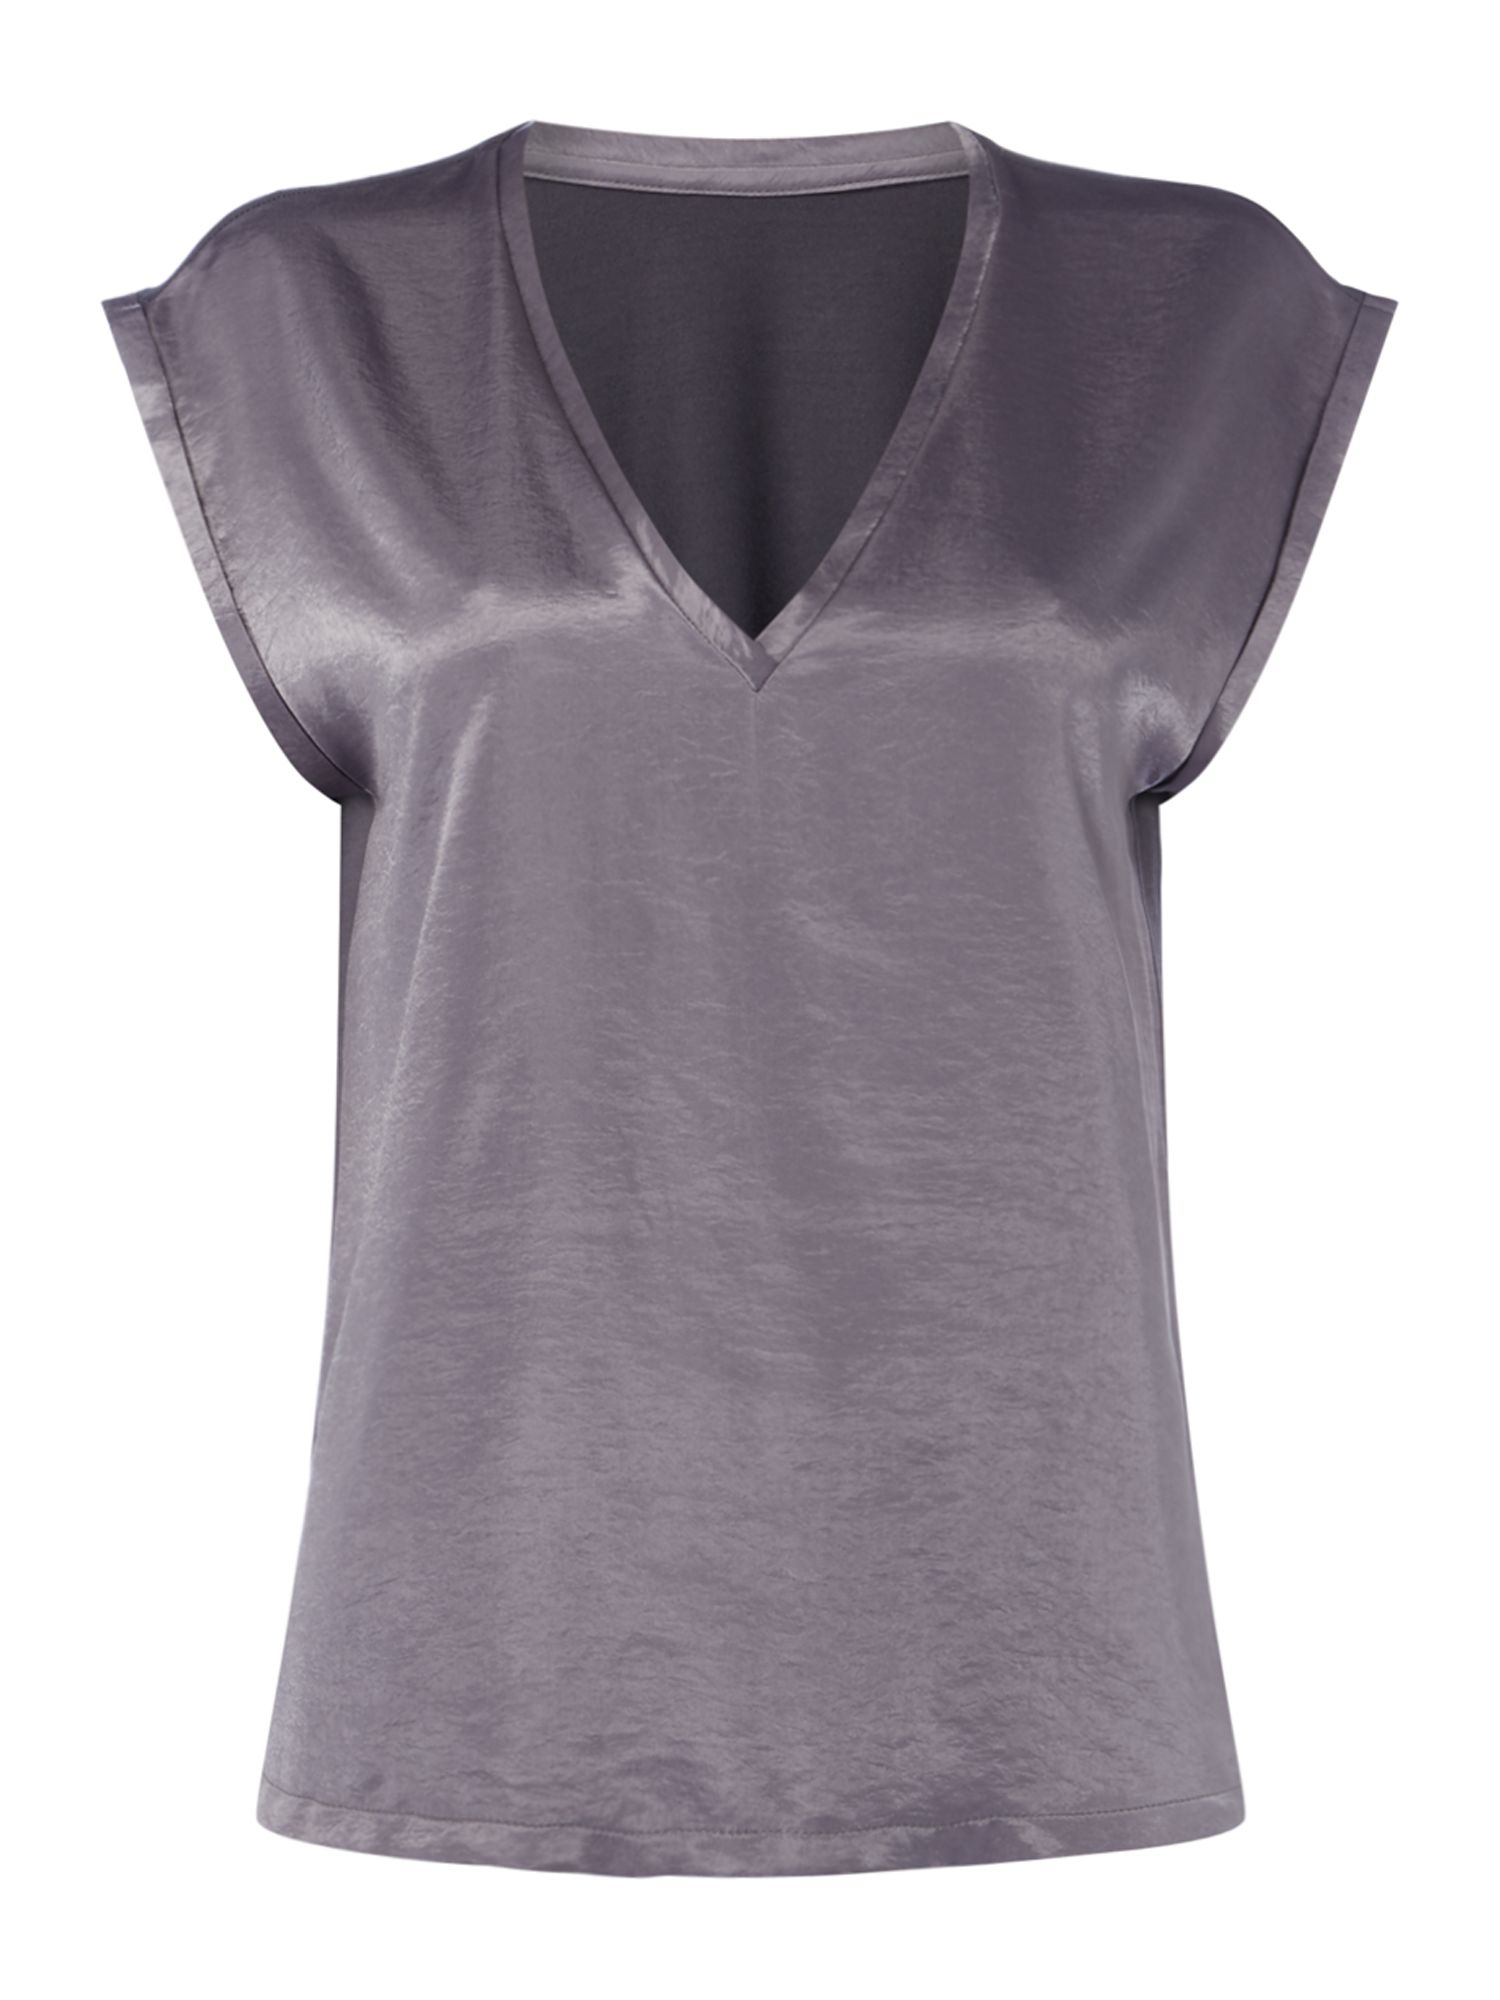 Linea Mae woven front jersey back t shirt, Grey